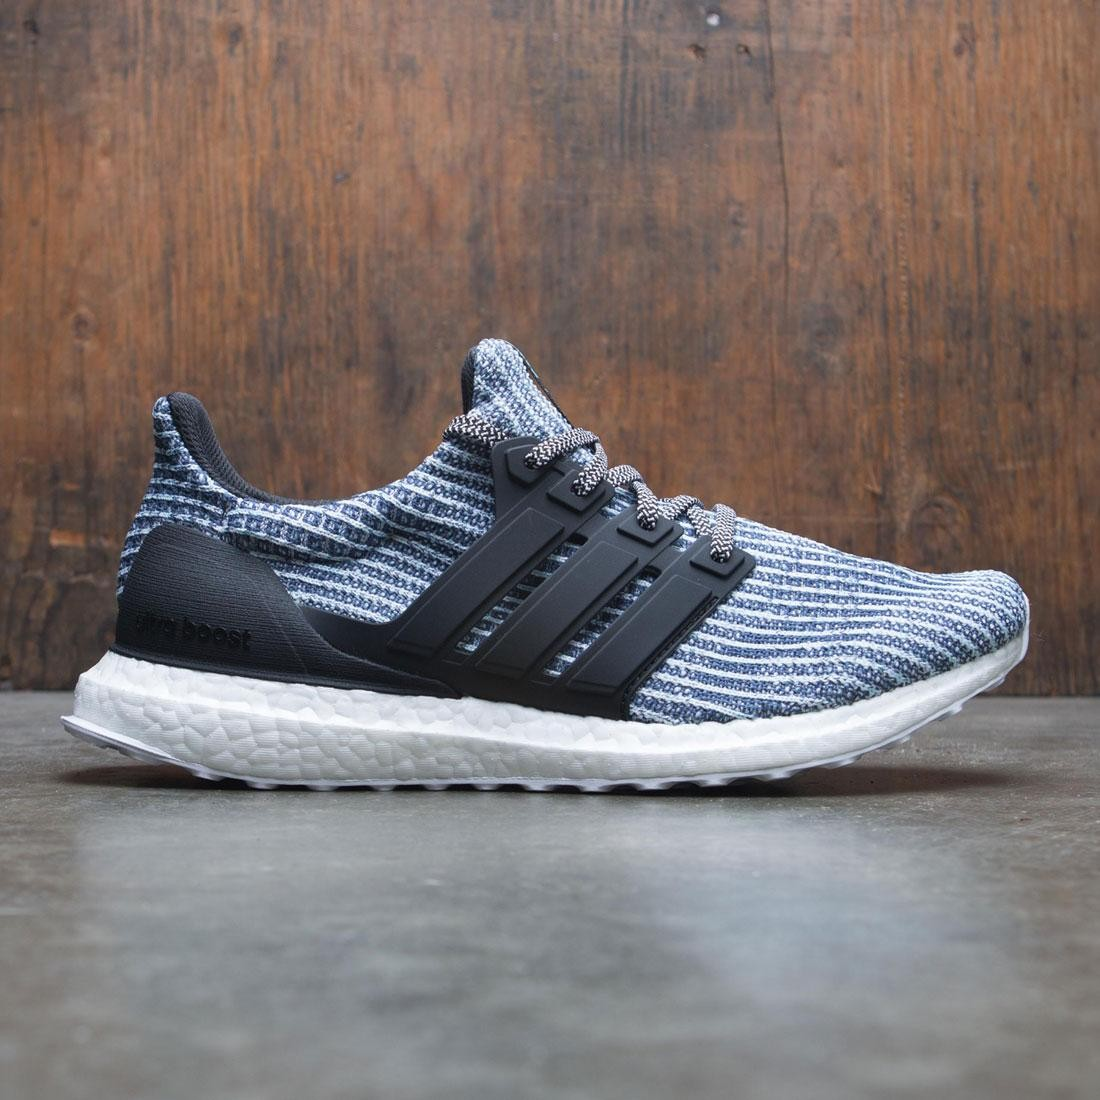 bb597ed8802 Adidas Men UltraBOOST Parley white carbon blue spirit